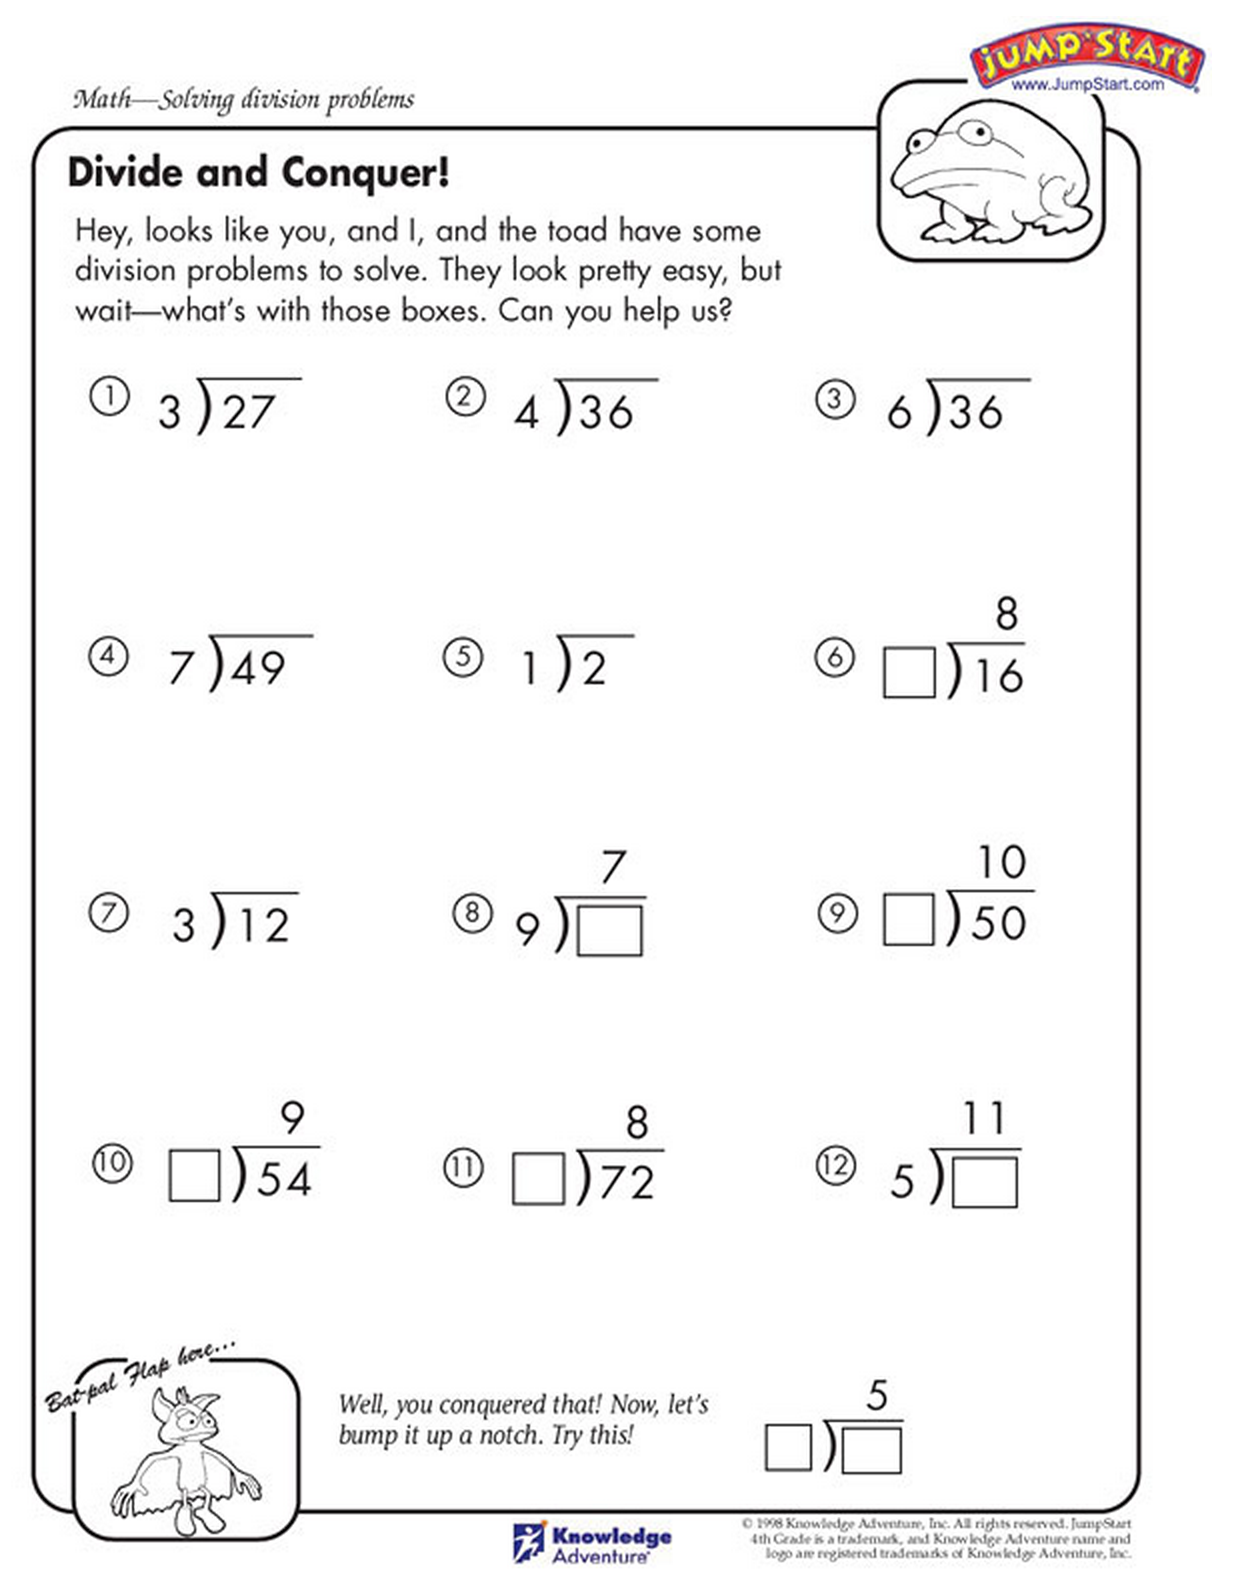 small resolution of Help mister toad solve these division problems!   Math practice worksheets